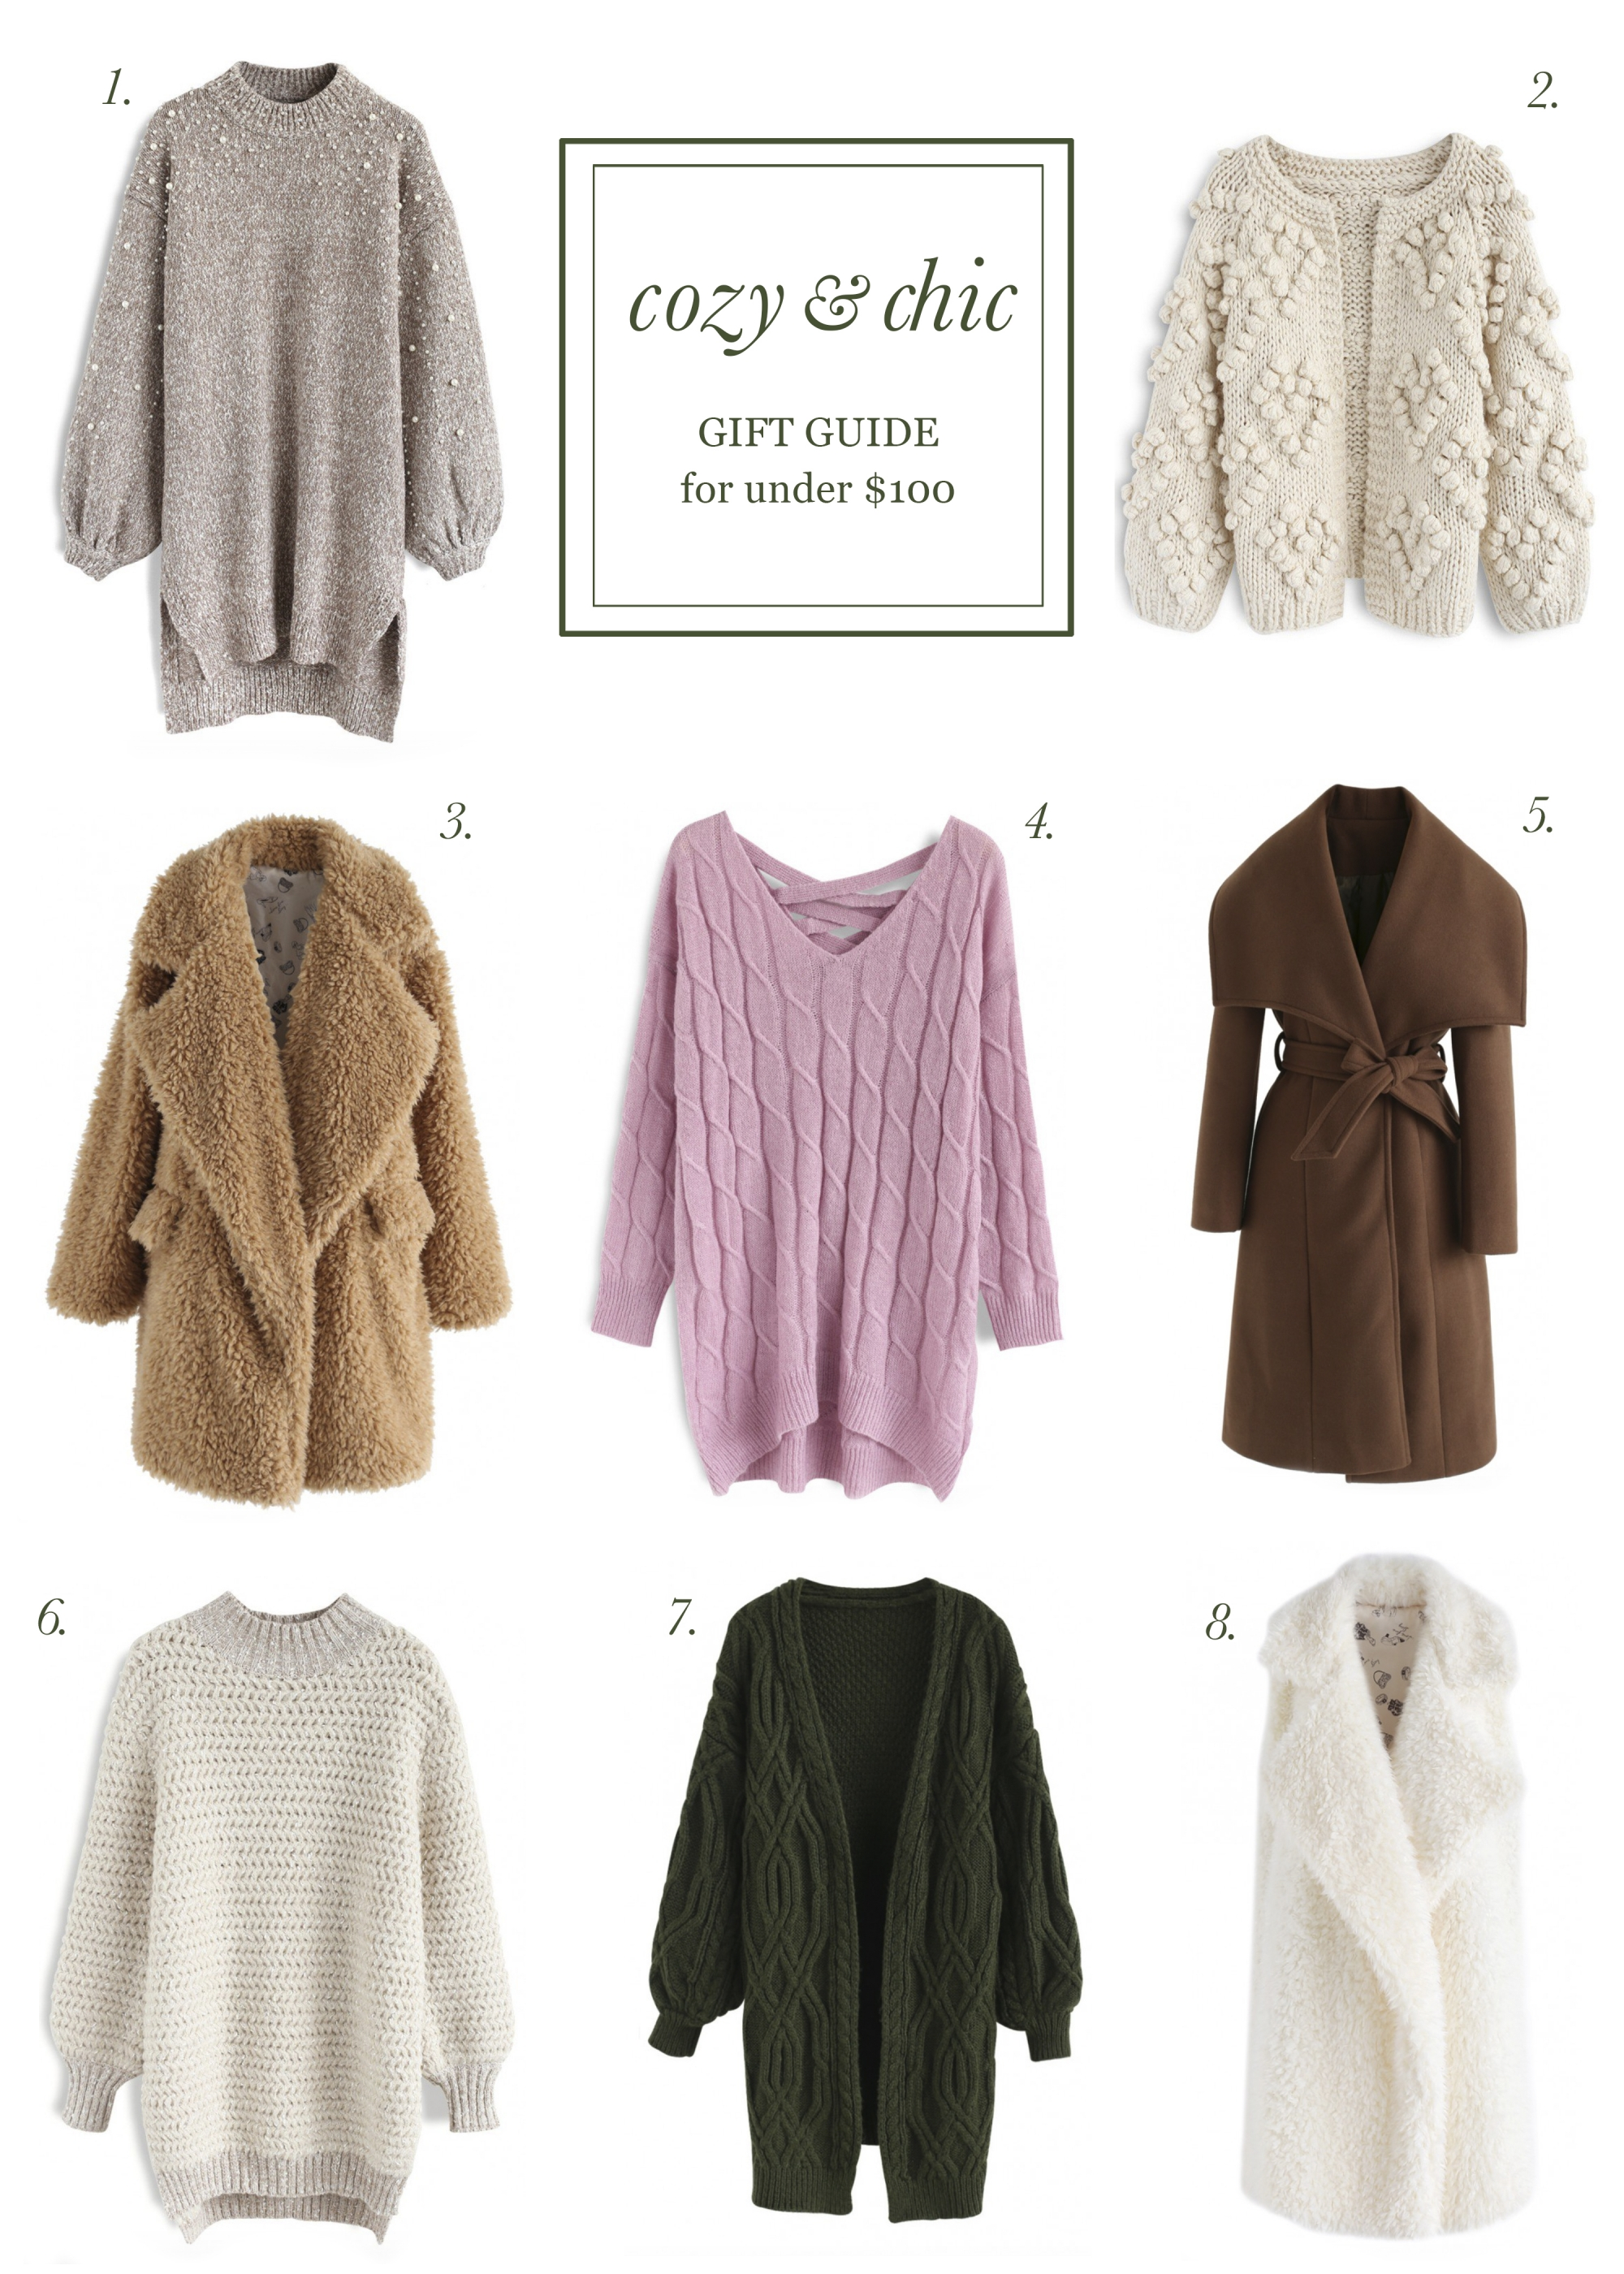 cozy and chic gift guide under $100